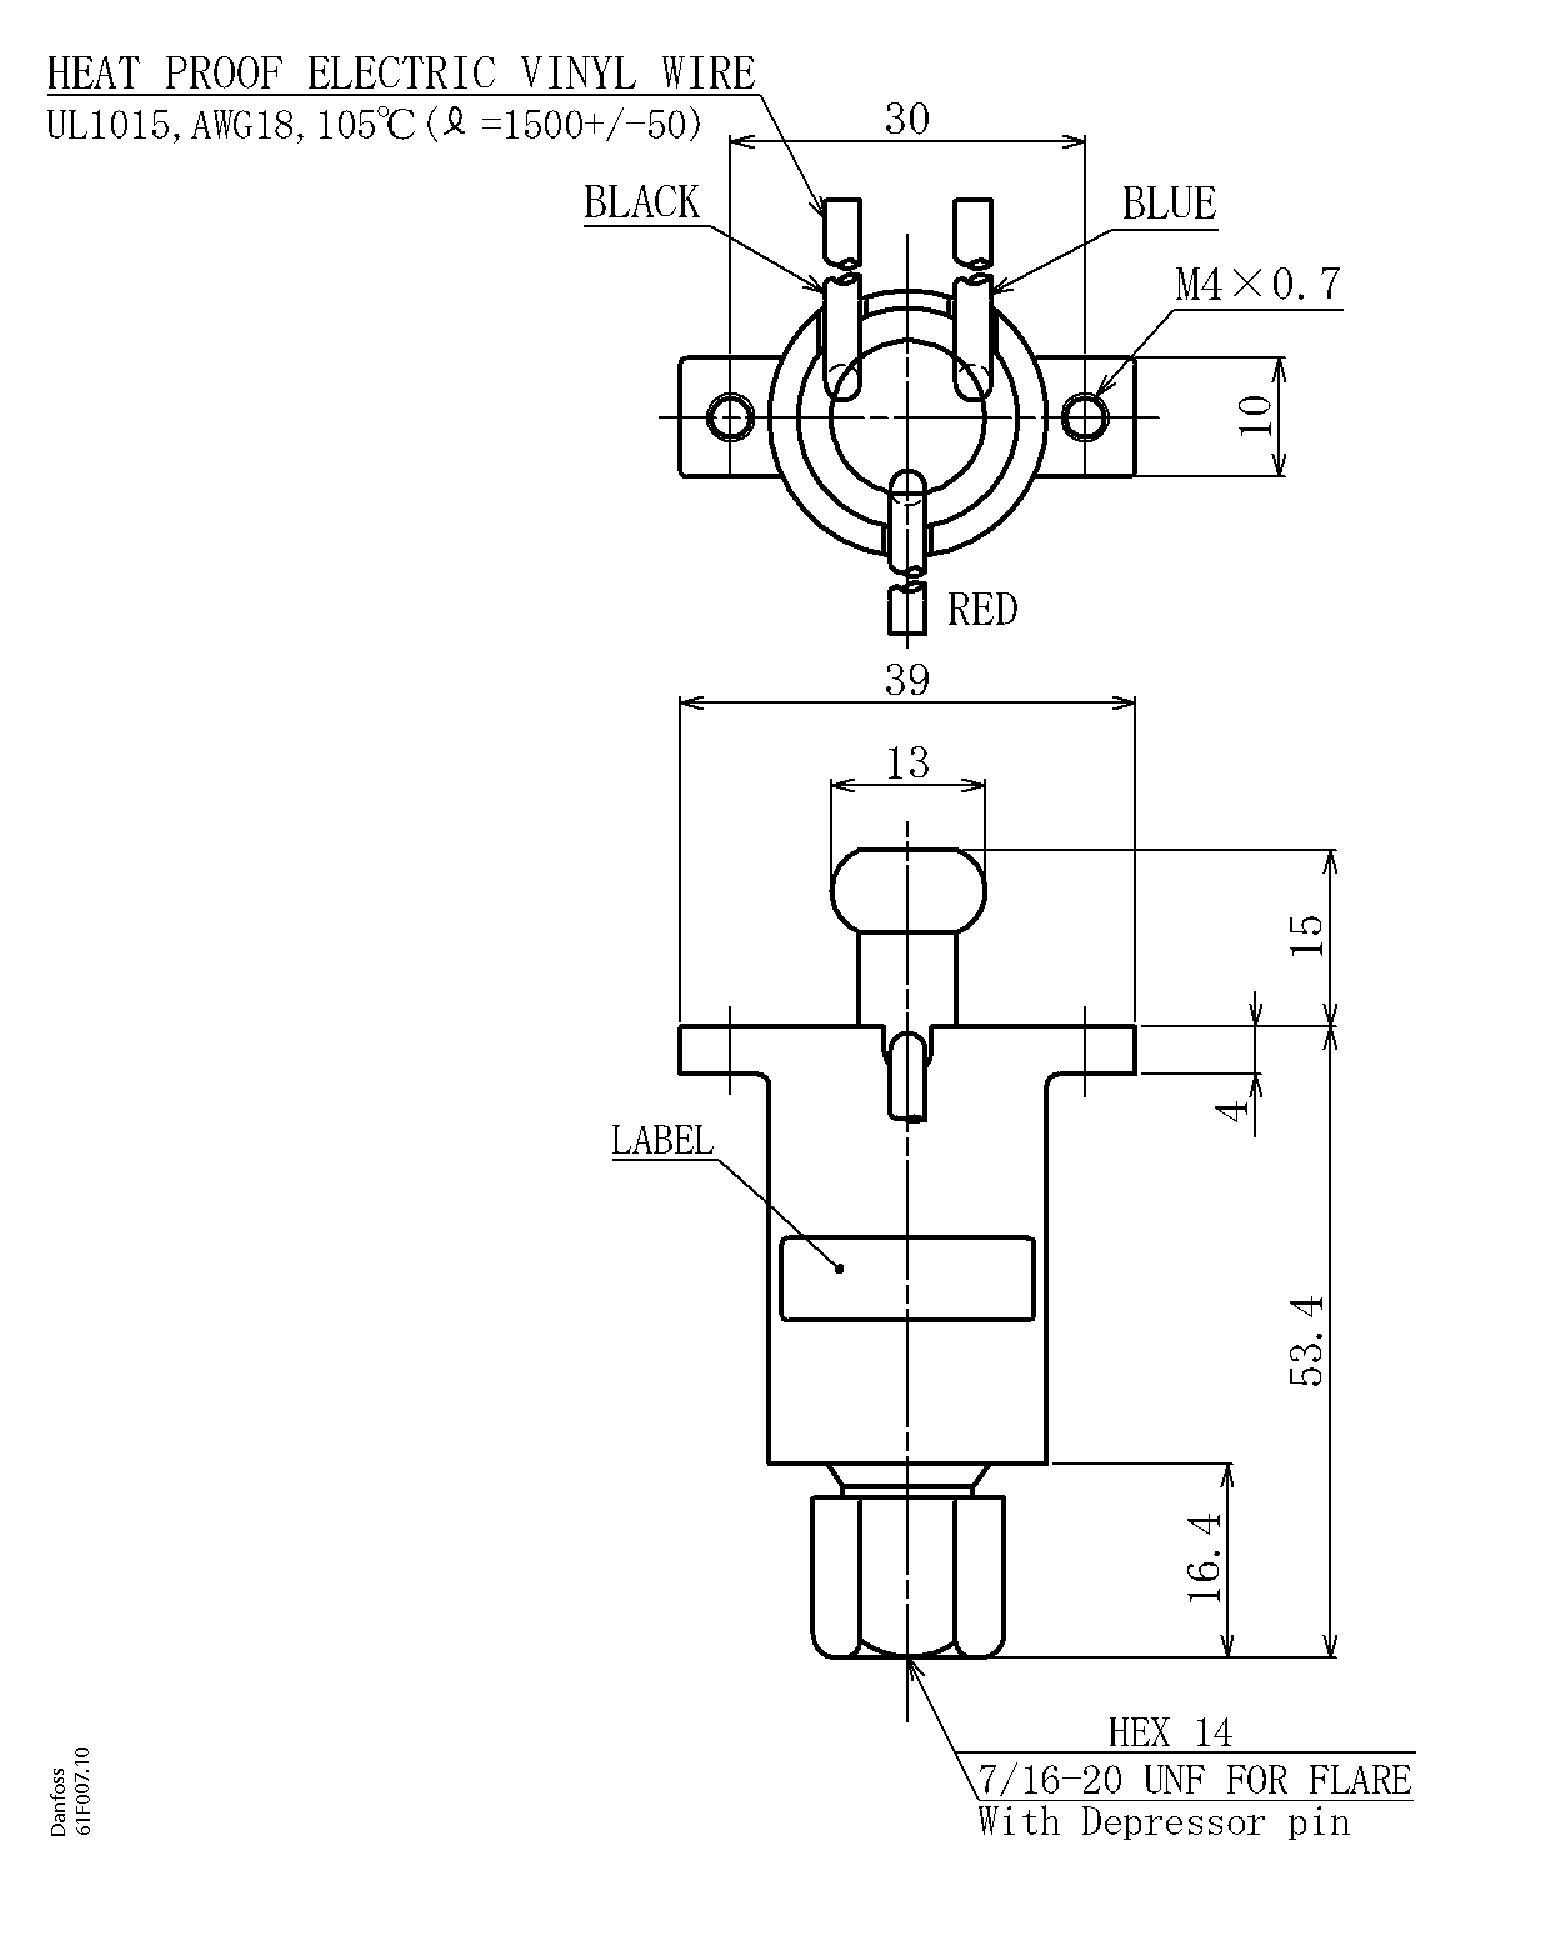 square d well pressure switch wiring diagram danfoss pressure switch wiring diagram danfoss dual pressure switch wiring diagram - wiring ... #3